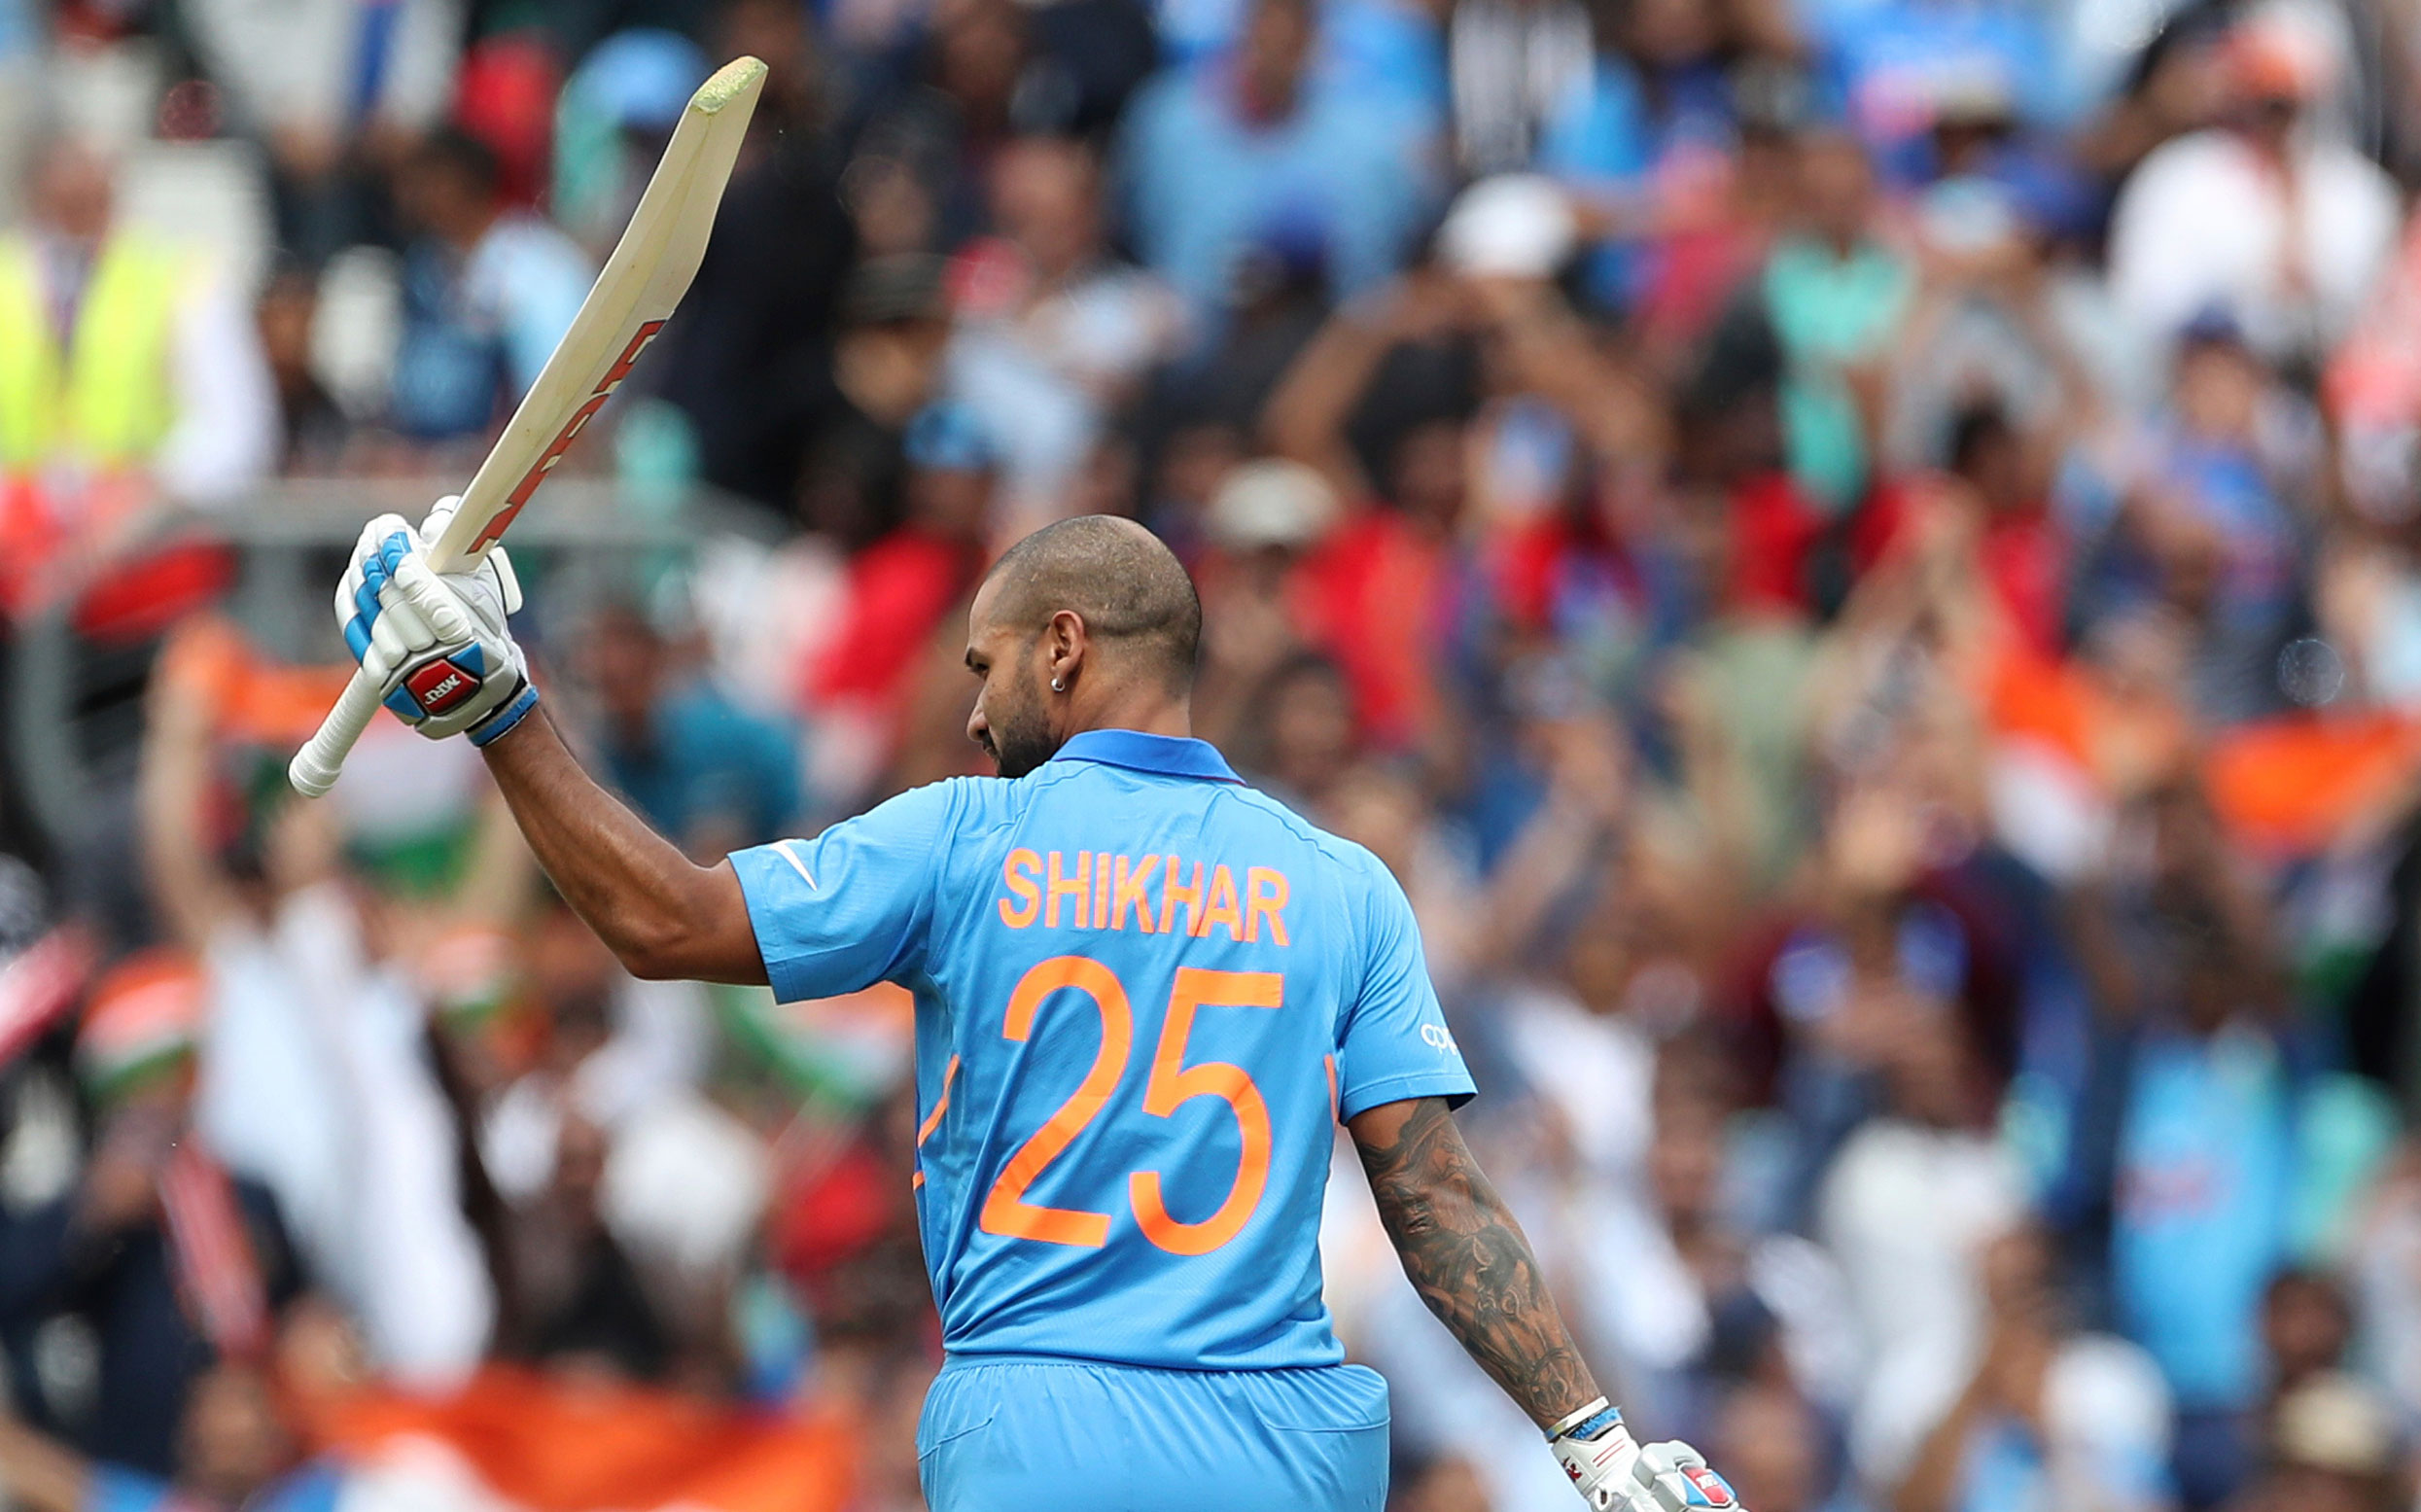 Shikhar Dhawan celebrates his century against Australia at The Oval in London, on June 9, 2019.